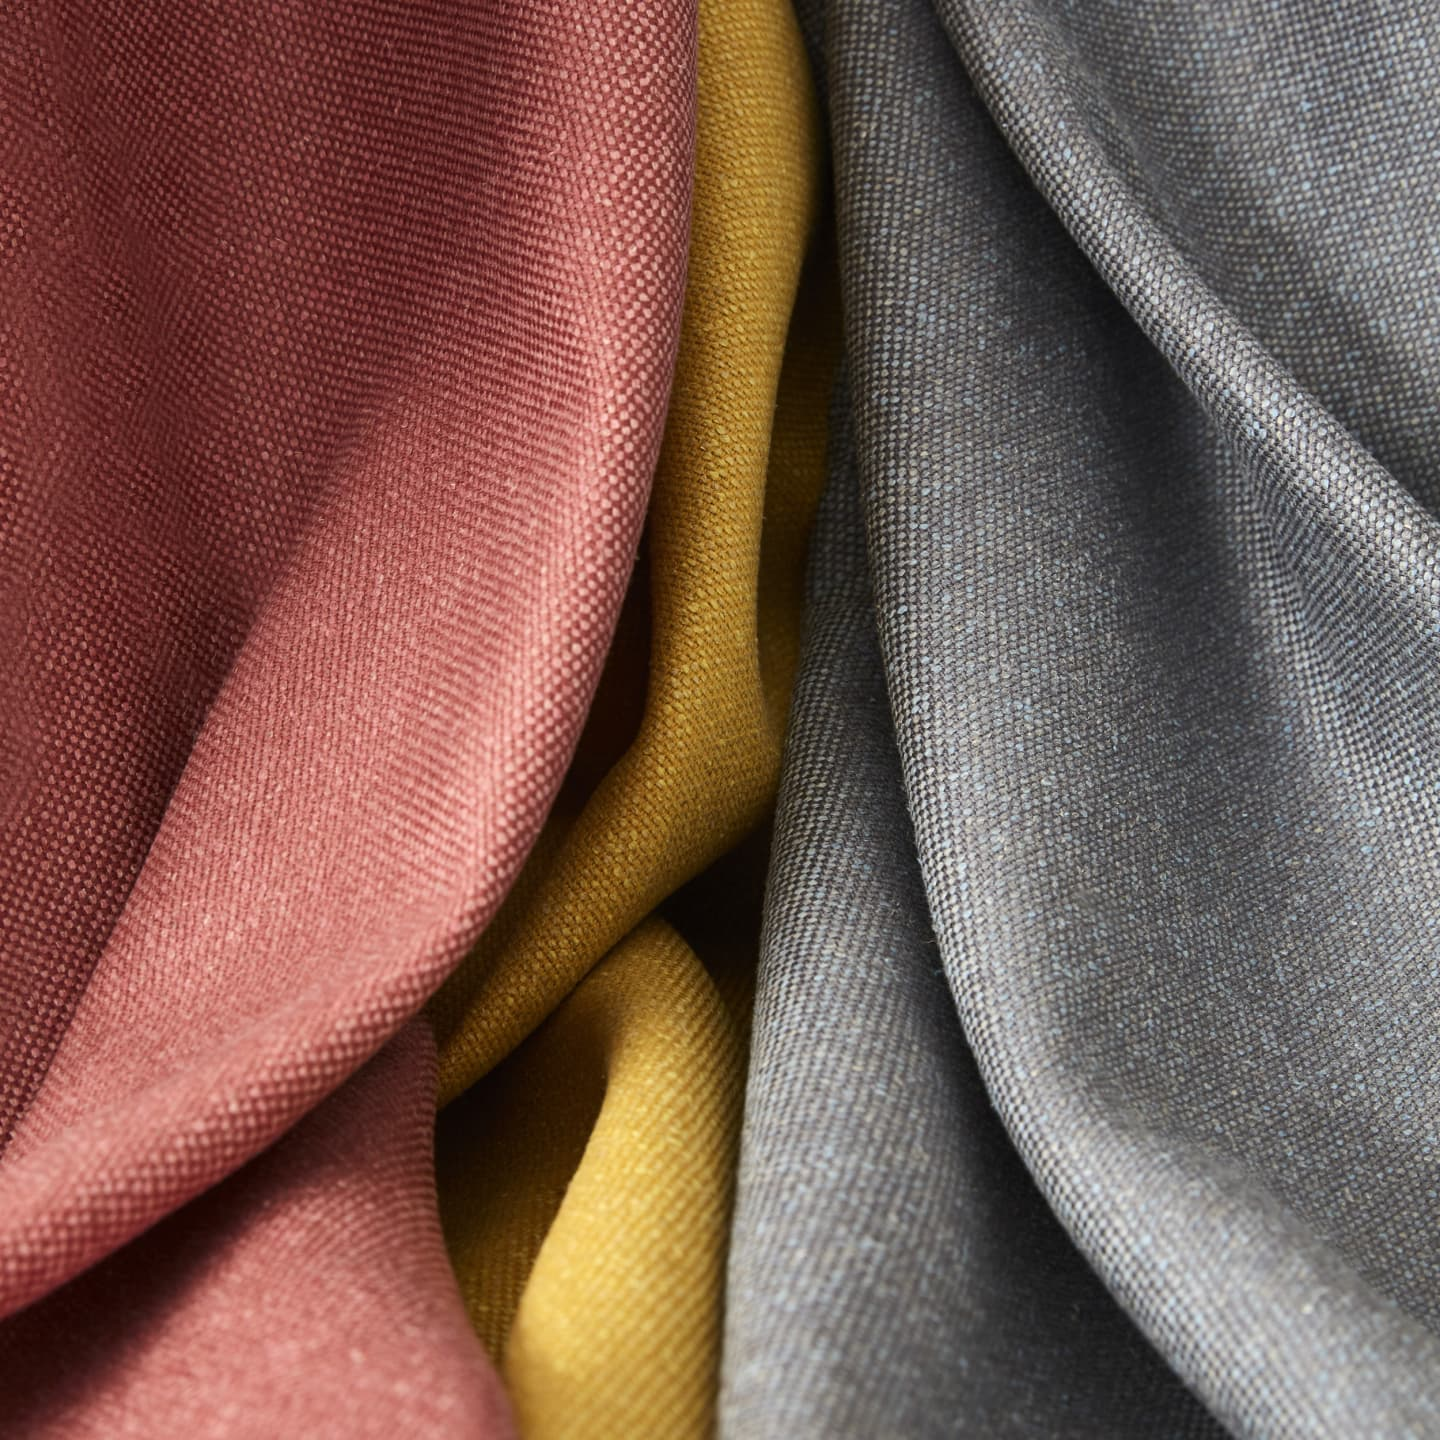 Close up of red yellow and silver fabrics